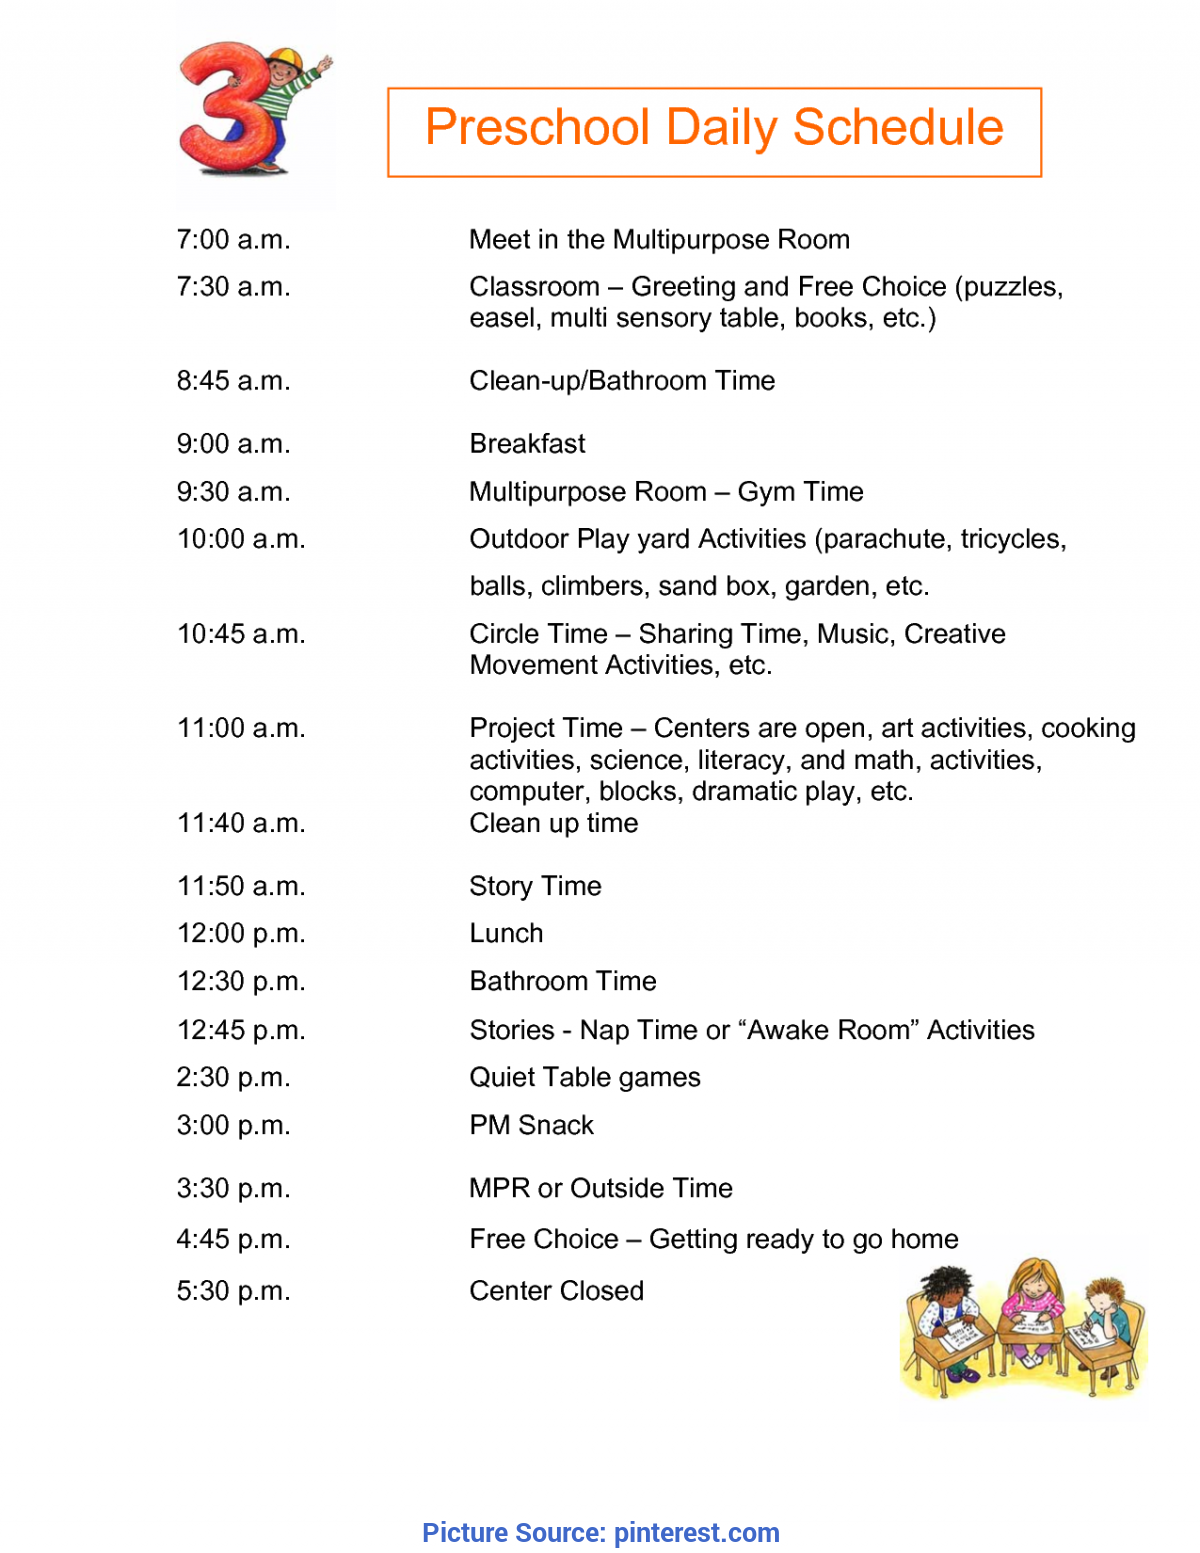 Unusual Preschool Daily Schedule Half Day Preschool Daily Schedule Submited Images   Pic2Fl